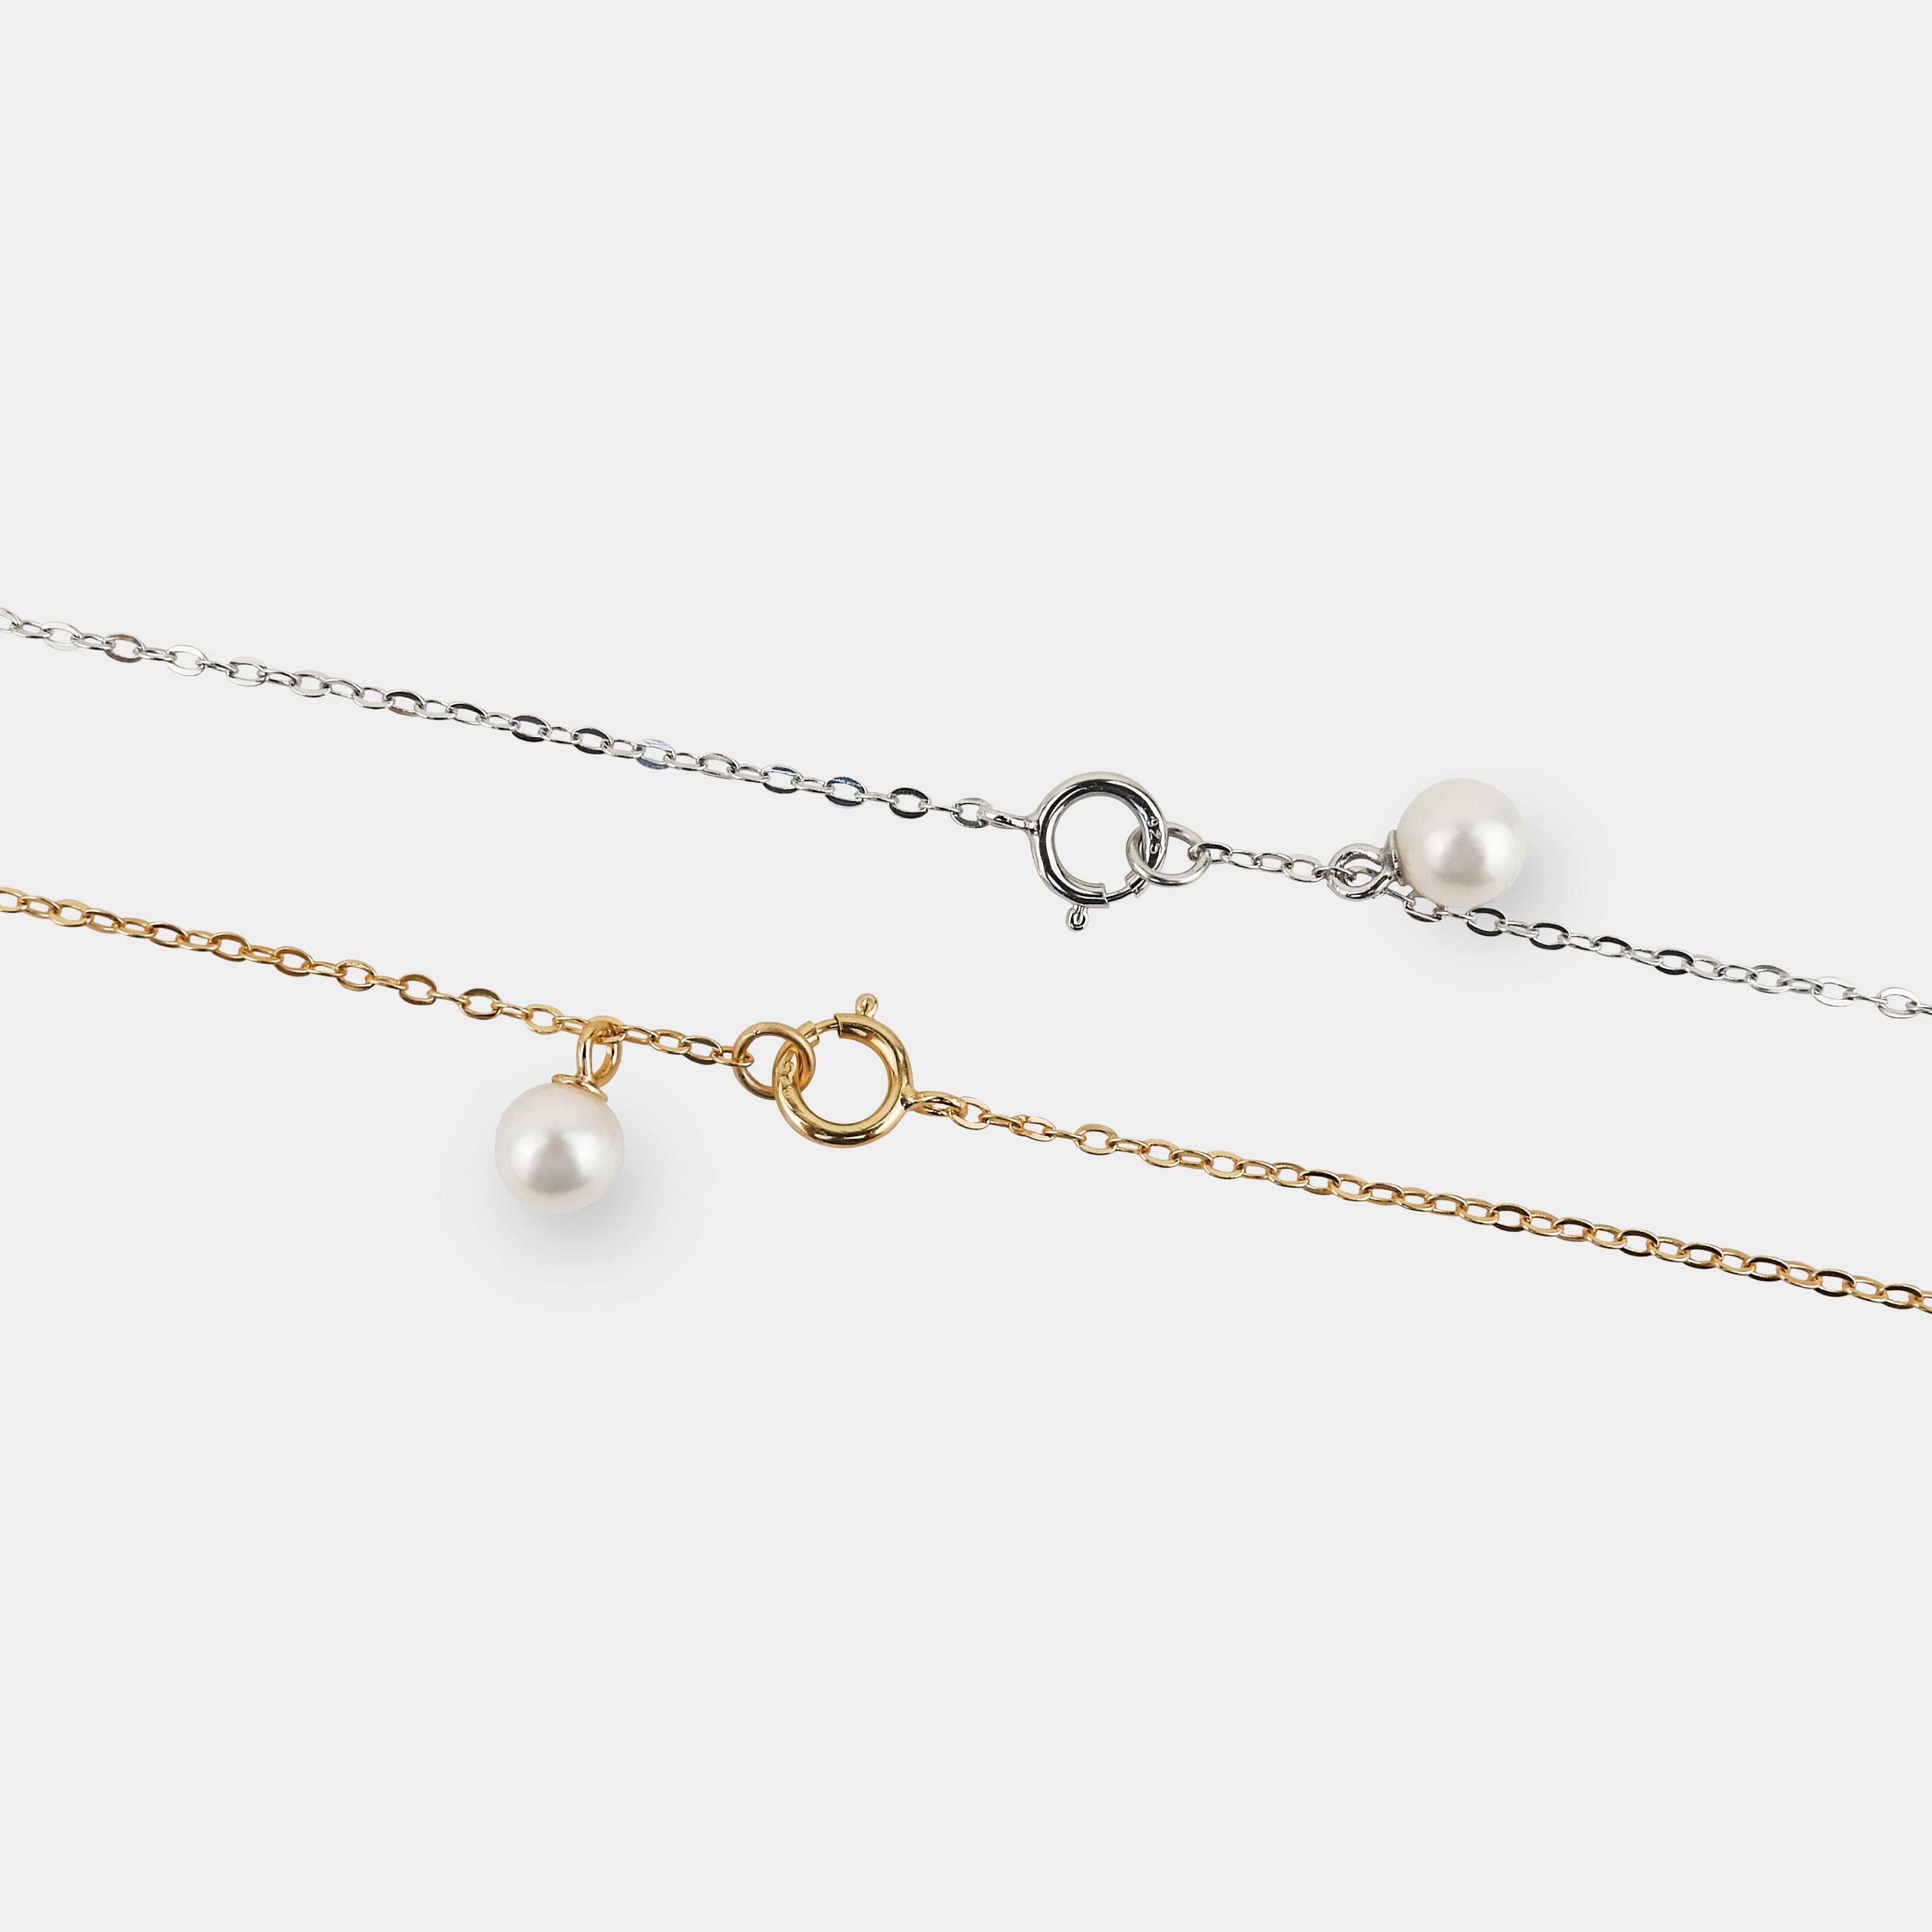 RAIN DROP PEARL NECKLACE